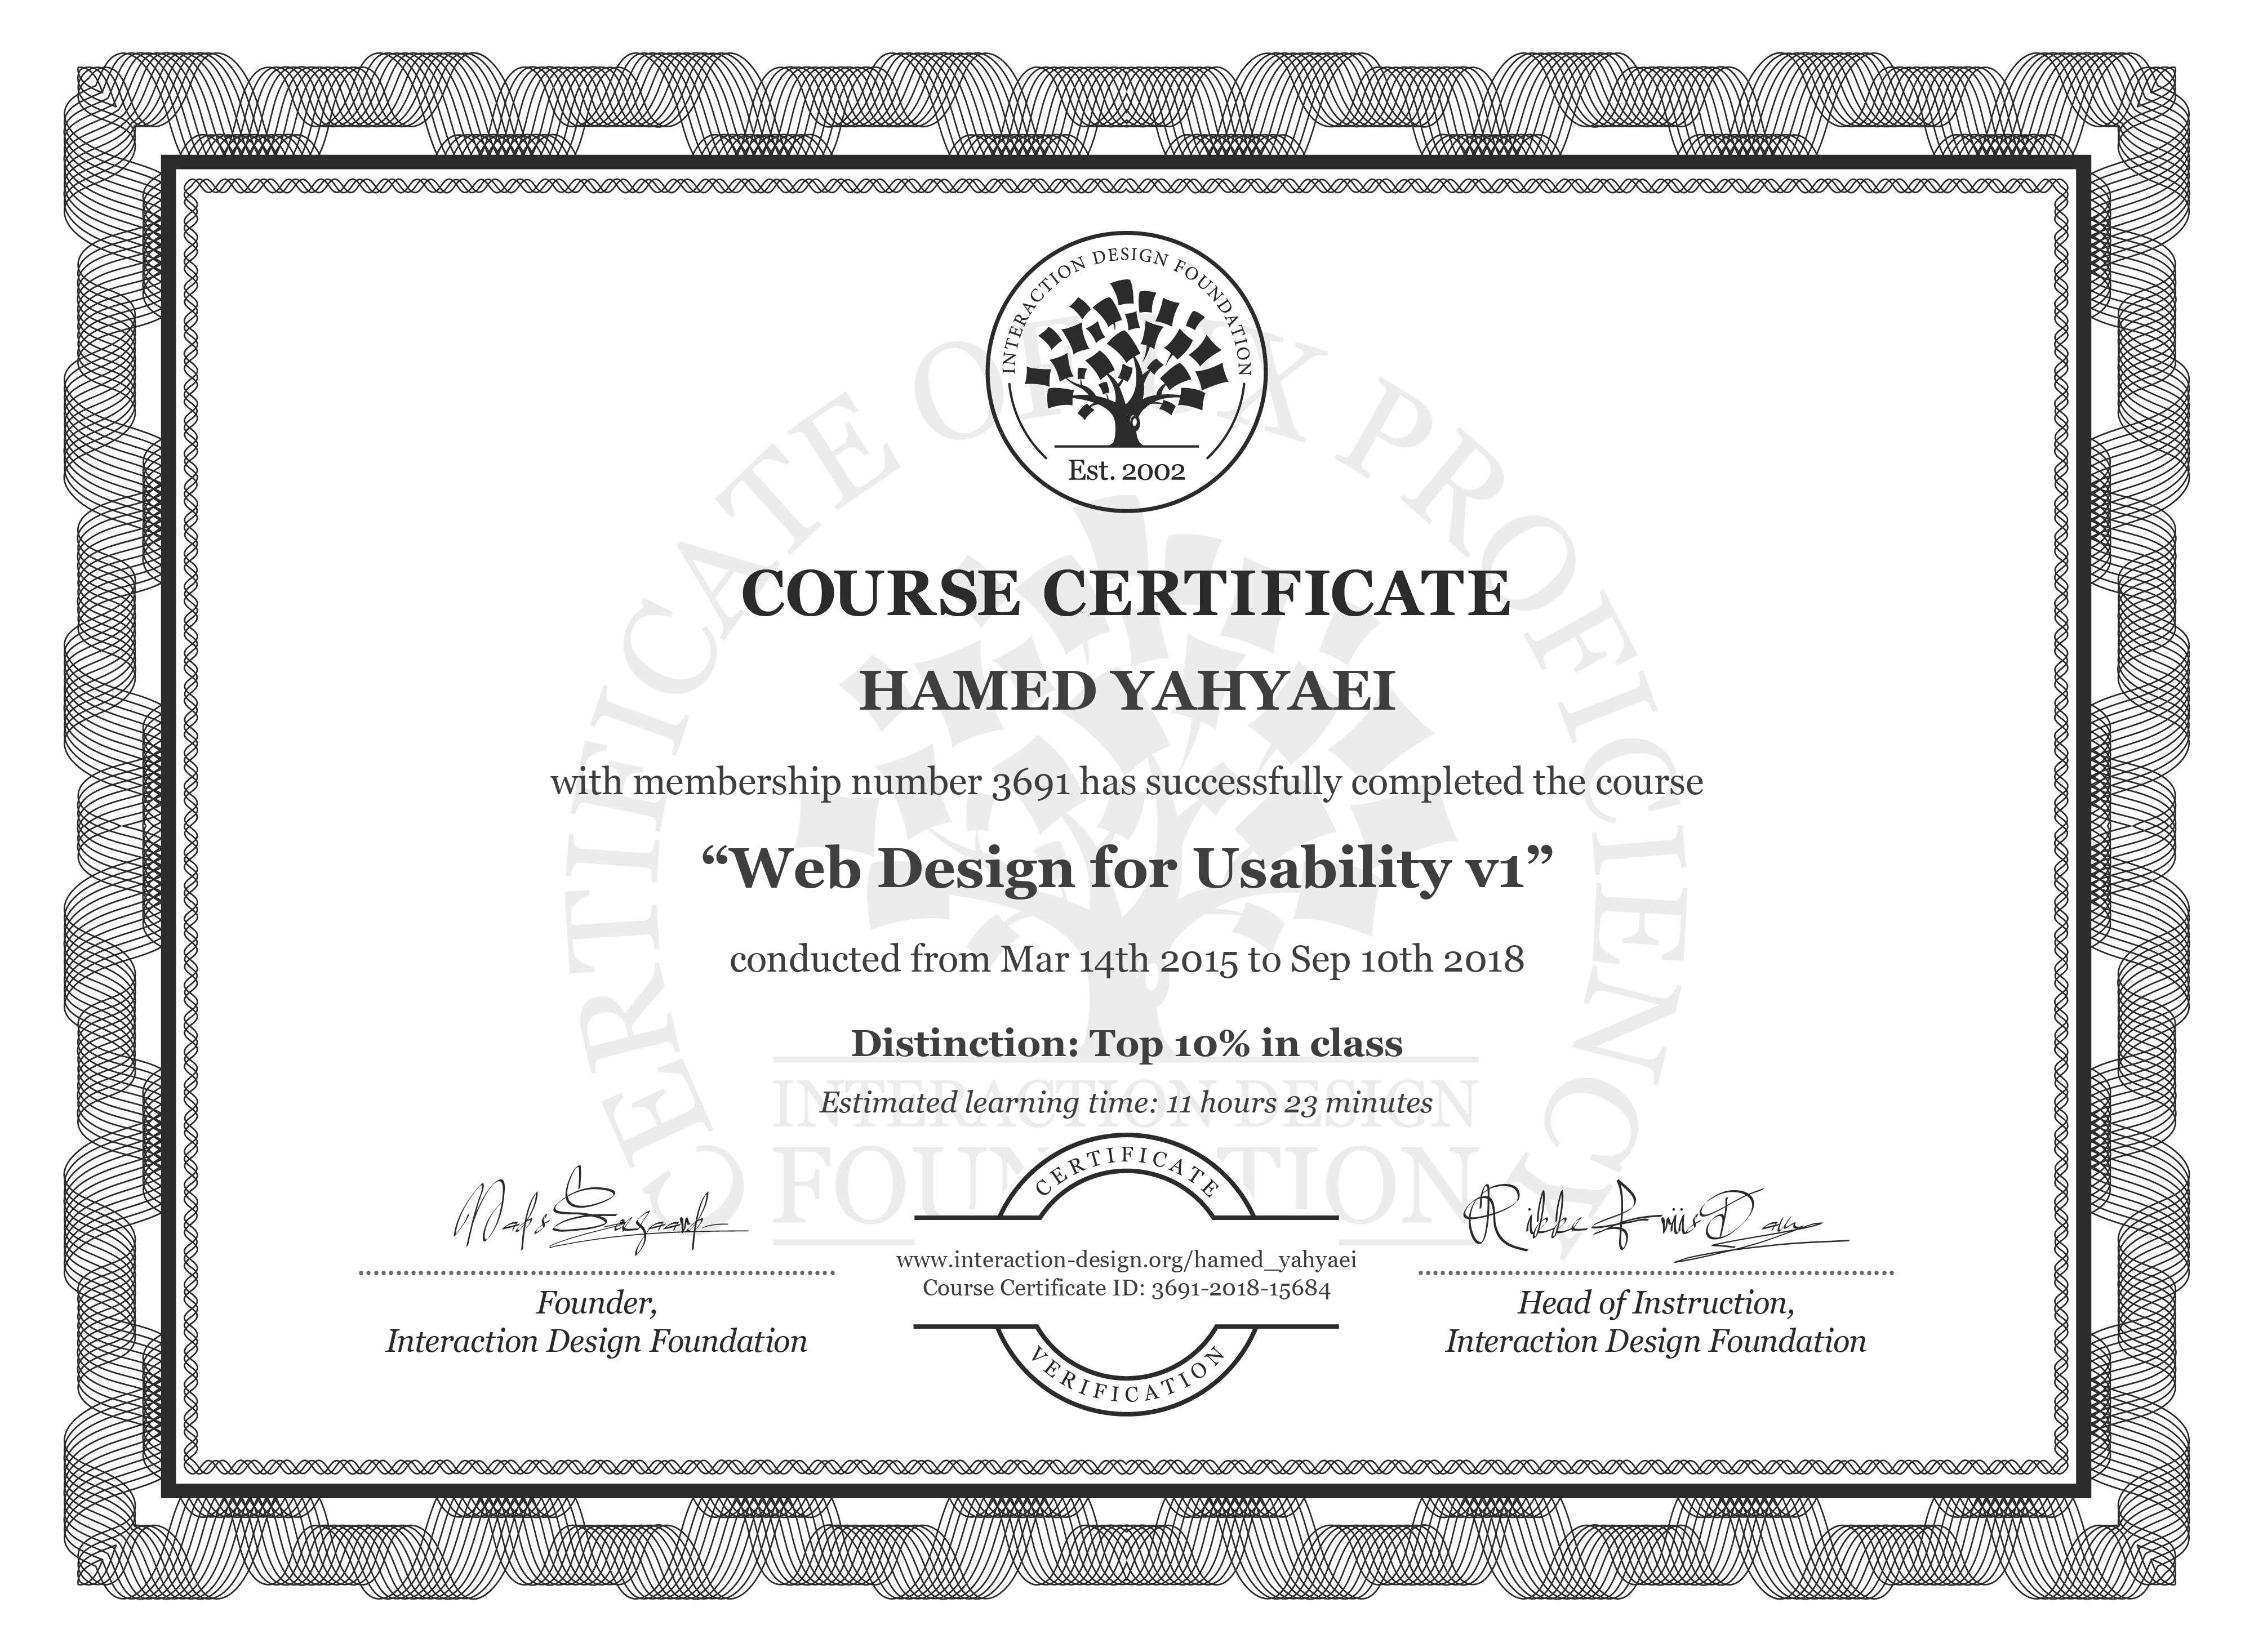 Hamed Yahyaei: Course Certificate - Web Design for Usability